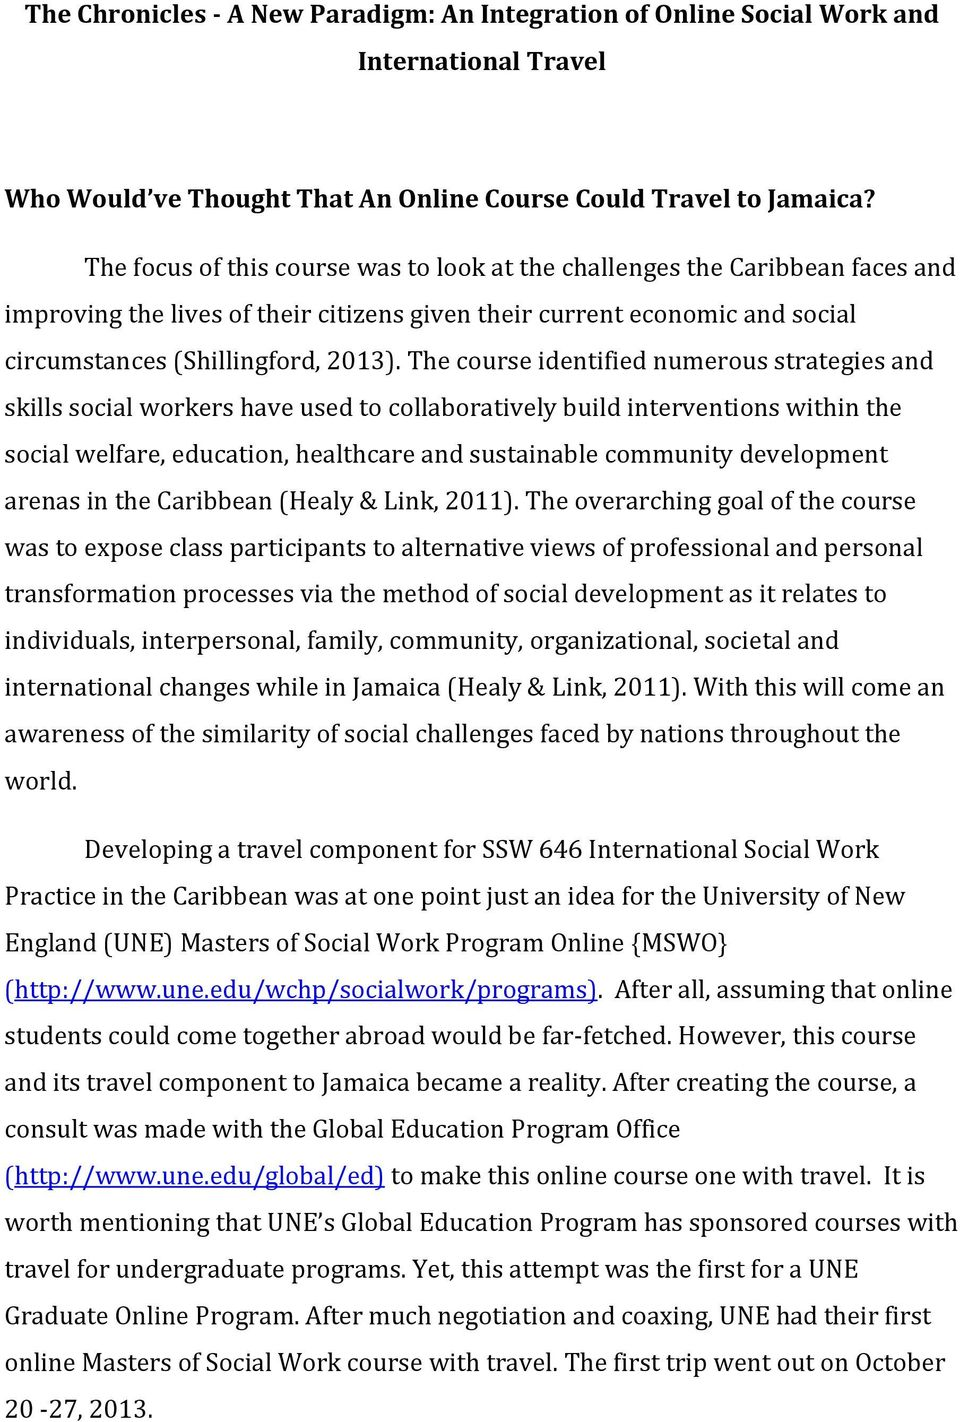 The course identified numerous strategies and skills social workers have used to collaboratively build interventions within the social welfare, education, healthcare and sustainable community